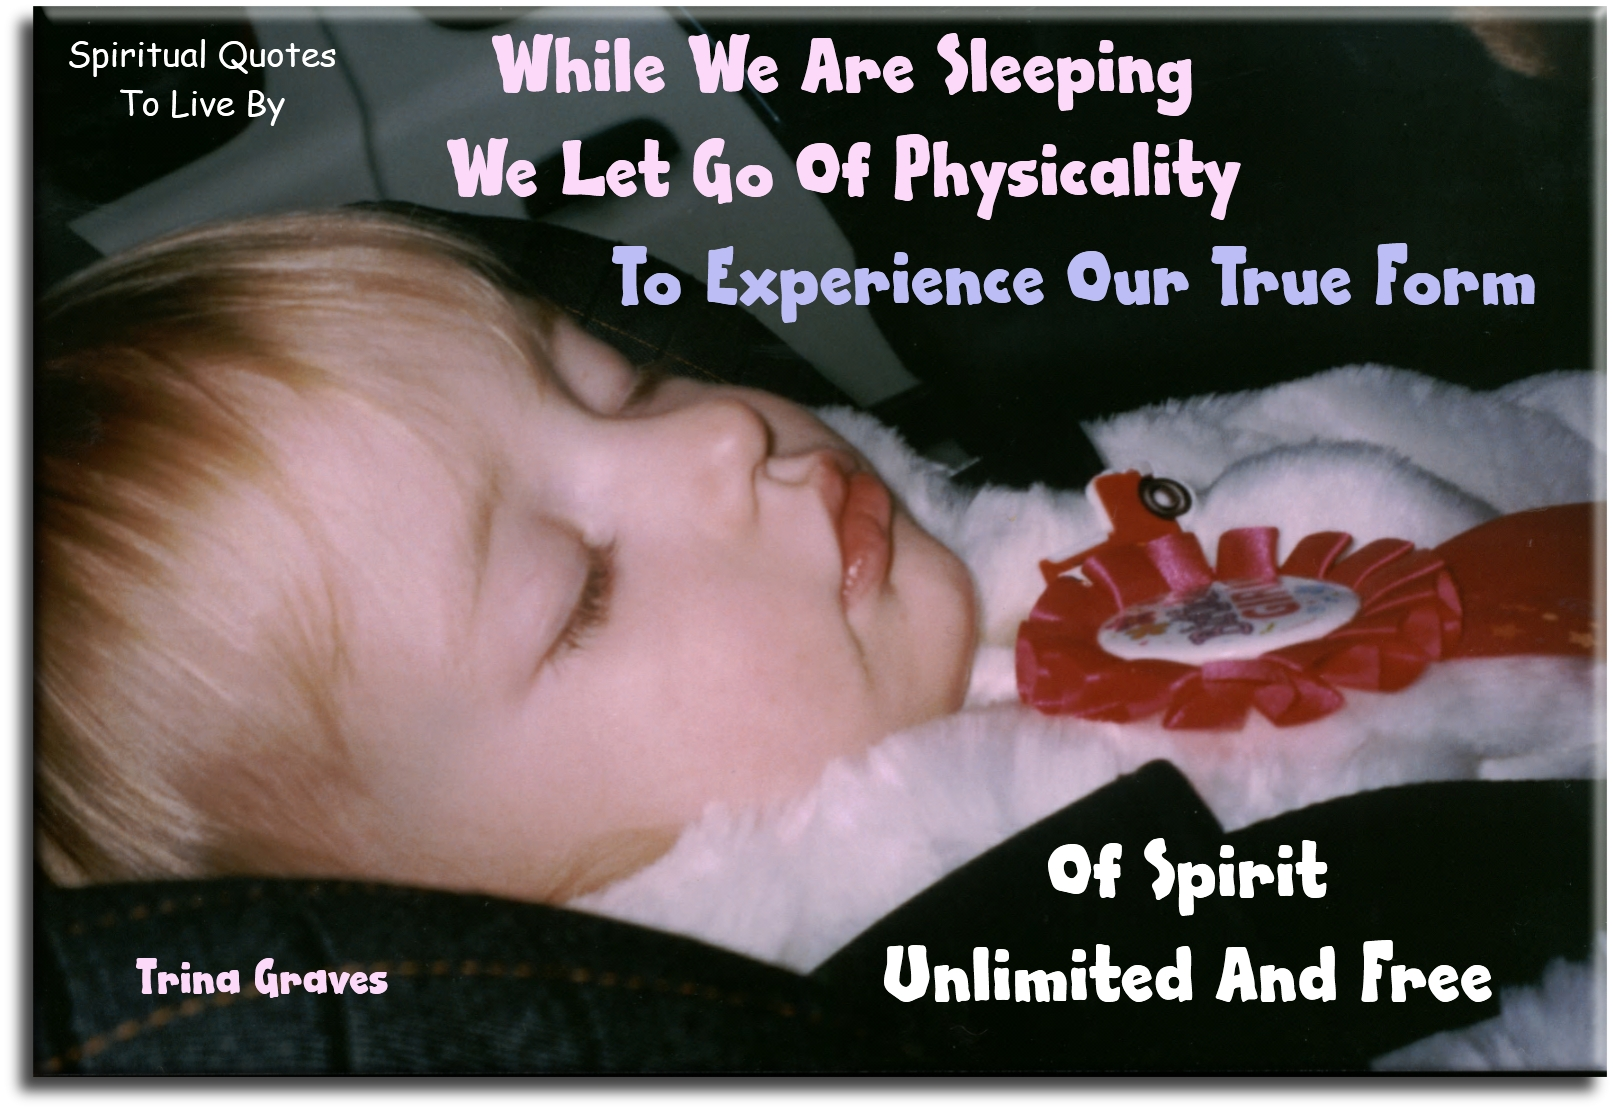 While we are sleeping, we let go of physicality, to experience our true form, of Spirit unlimited and free - Trina Graves - Spiritual Quotes To Live By